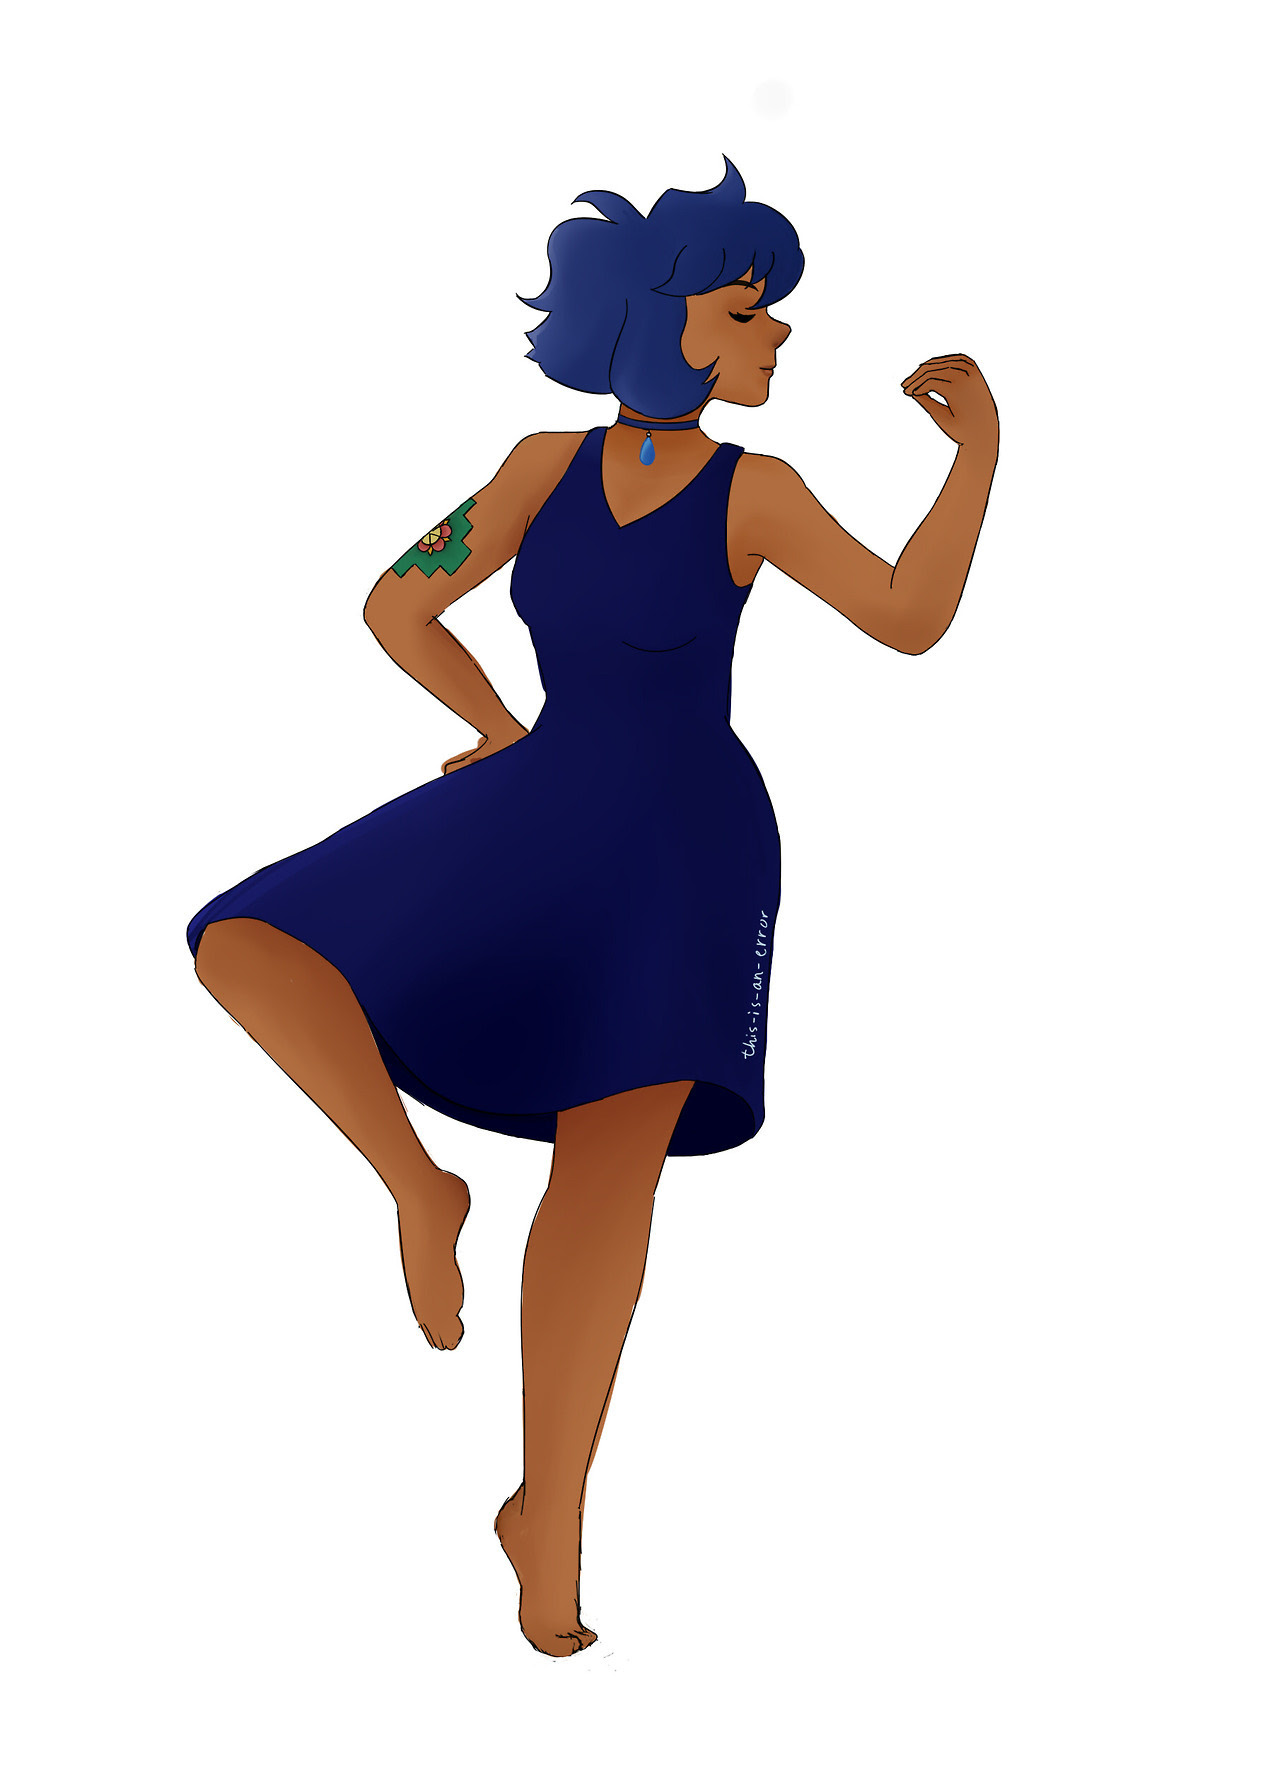 I drew a human lapis lazuli (peruvian lapis), I actually love how it turned out. Her tattoo is a chacana.